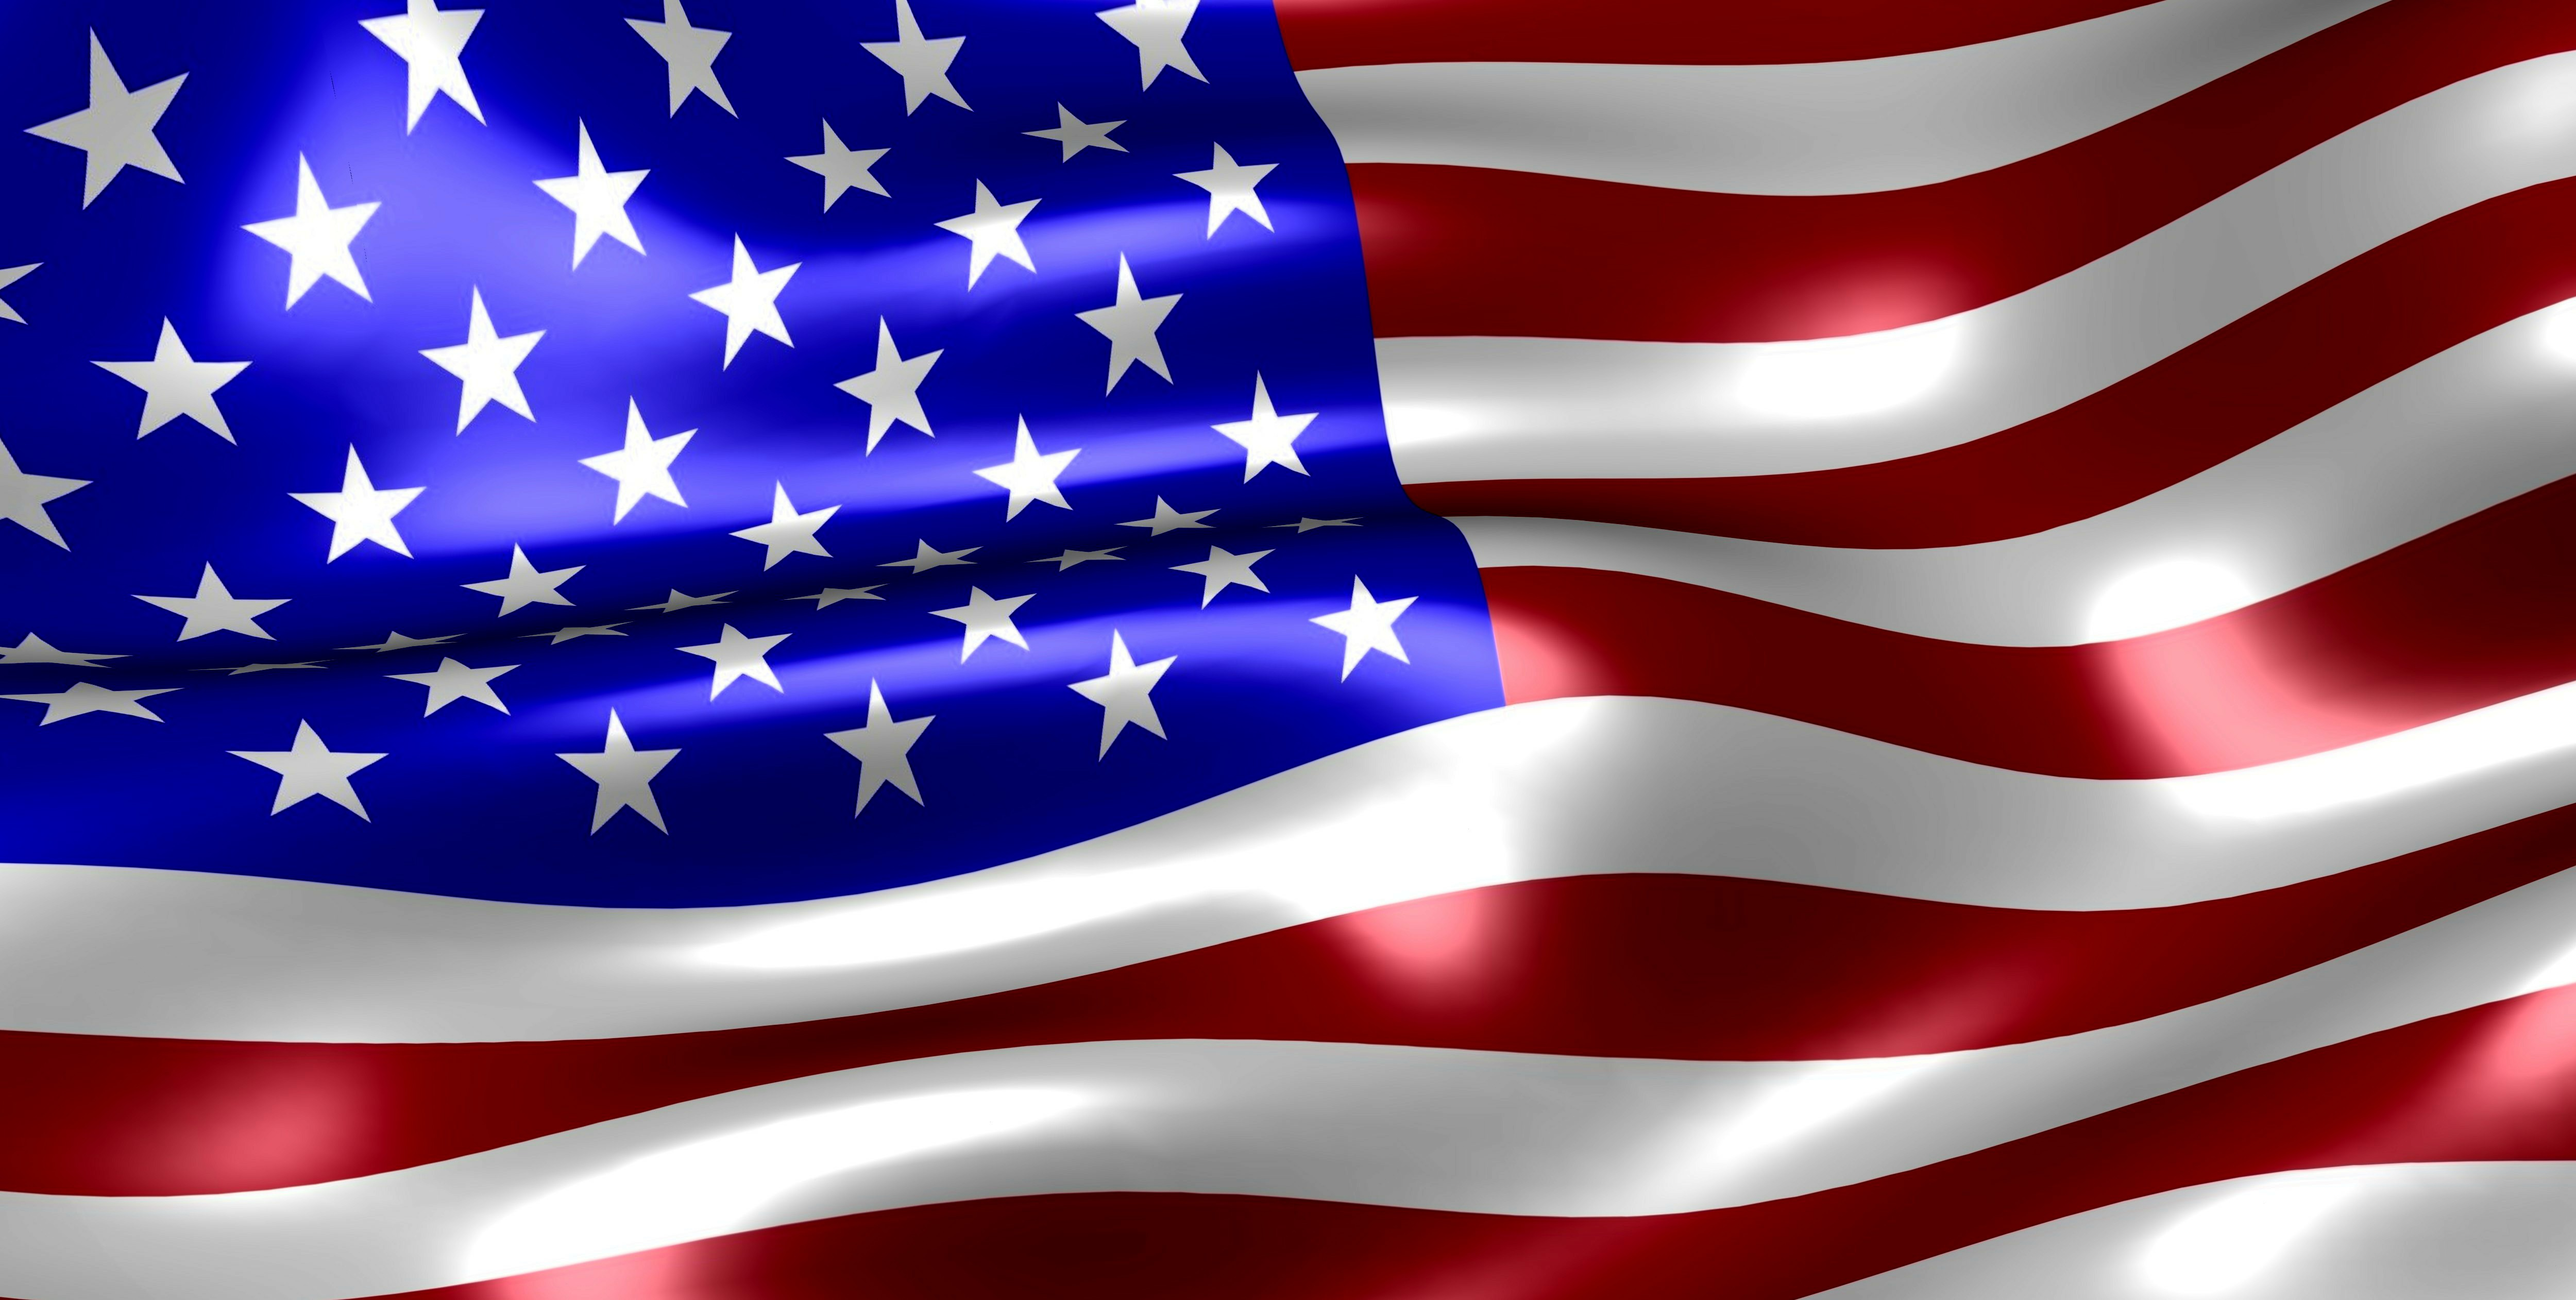 Usa Flag Pictures 74